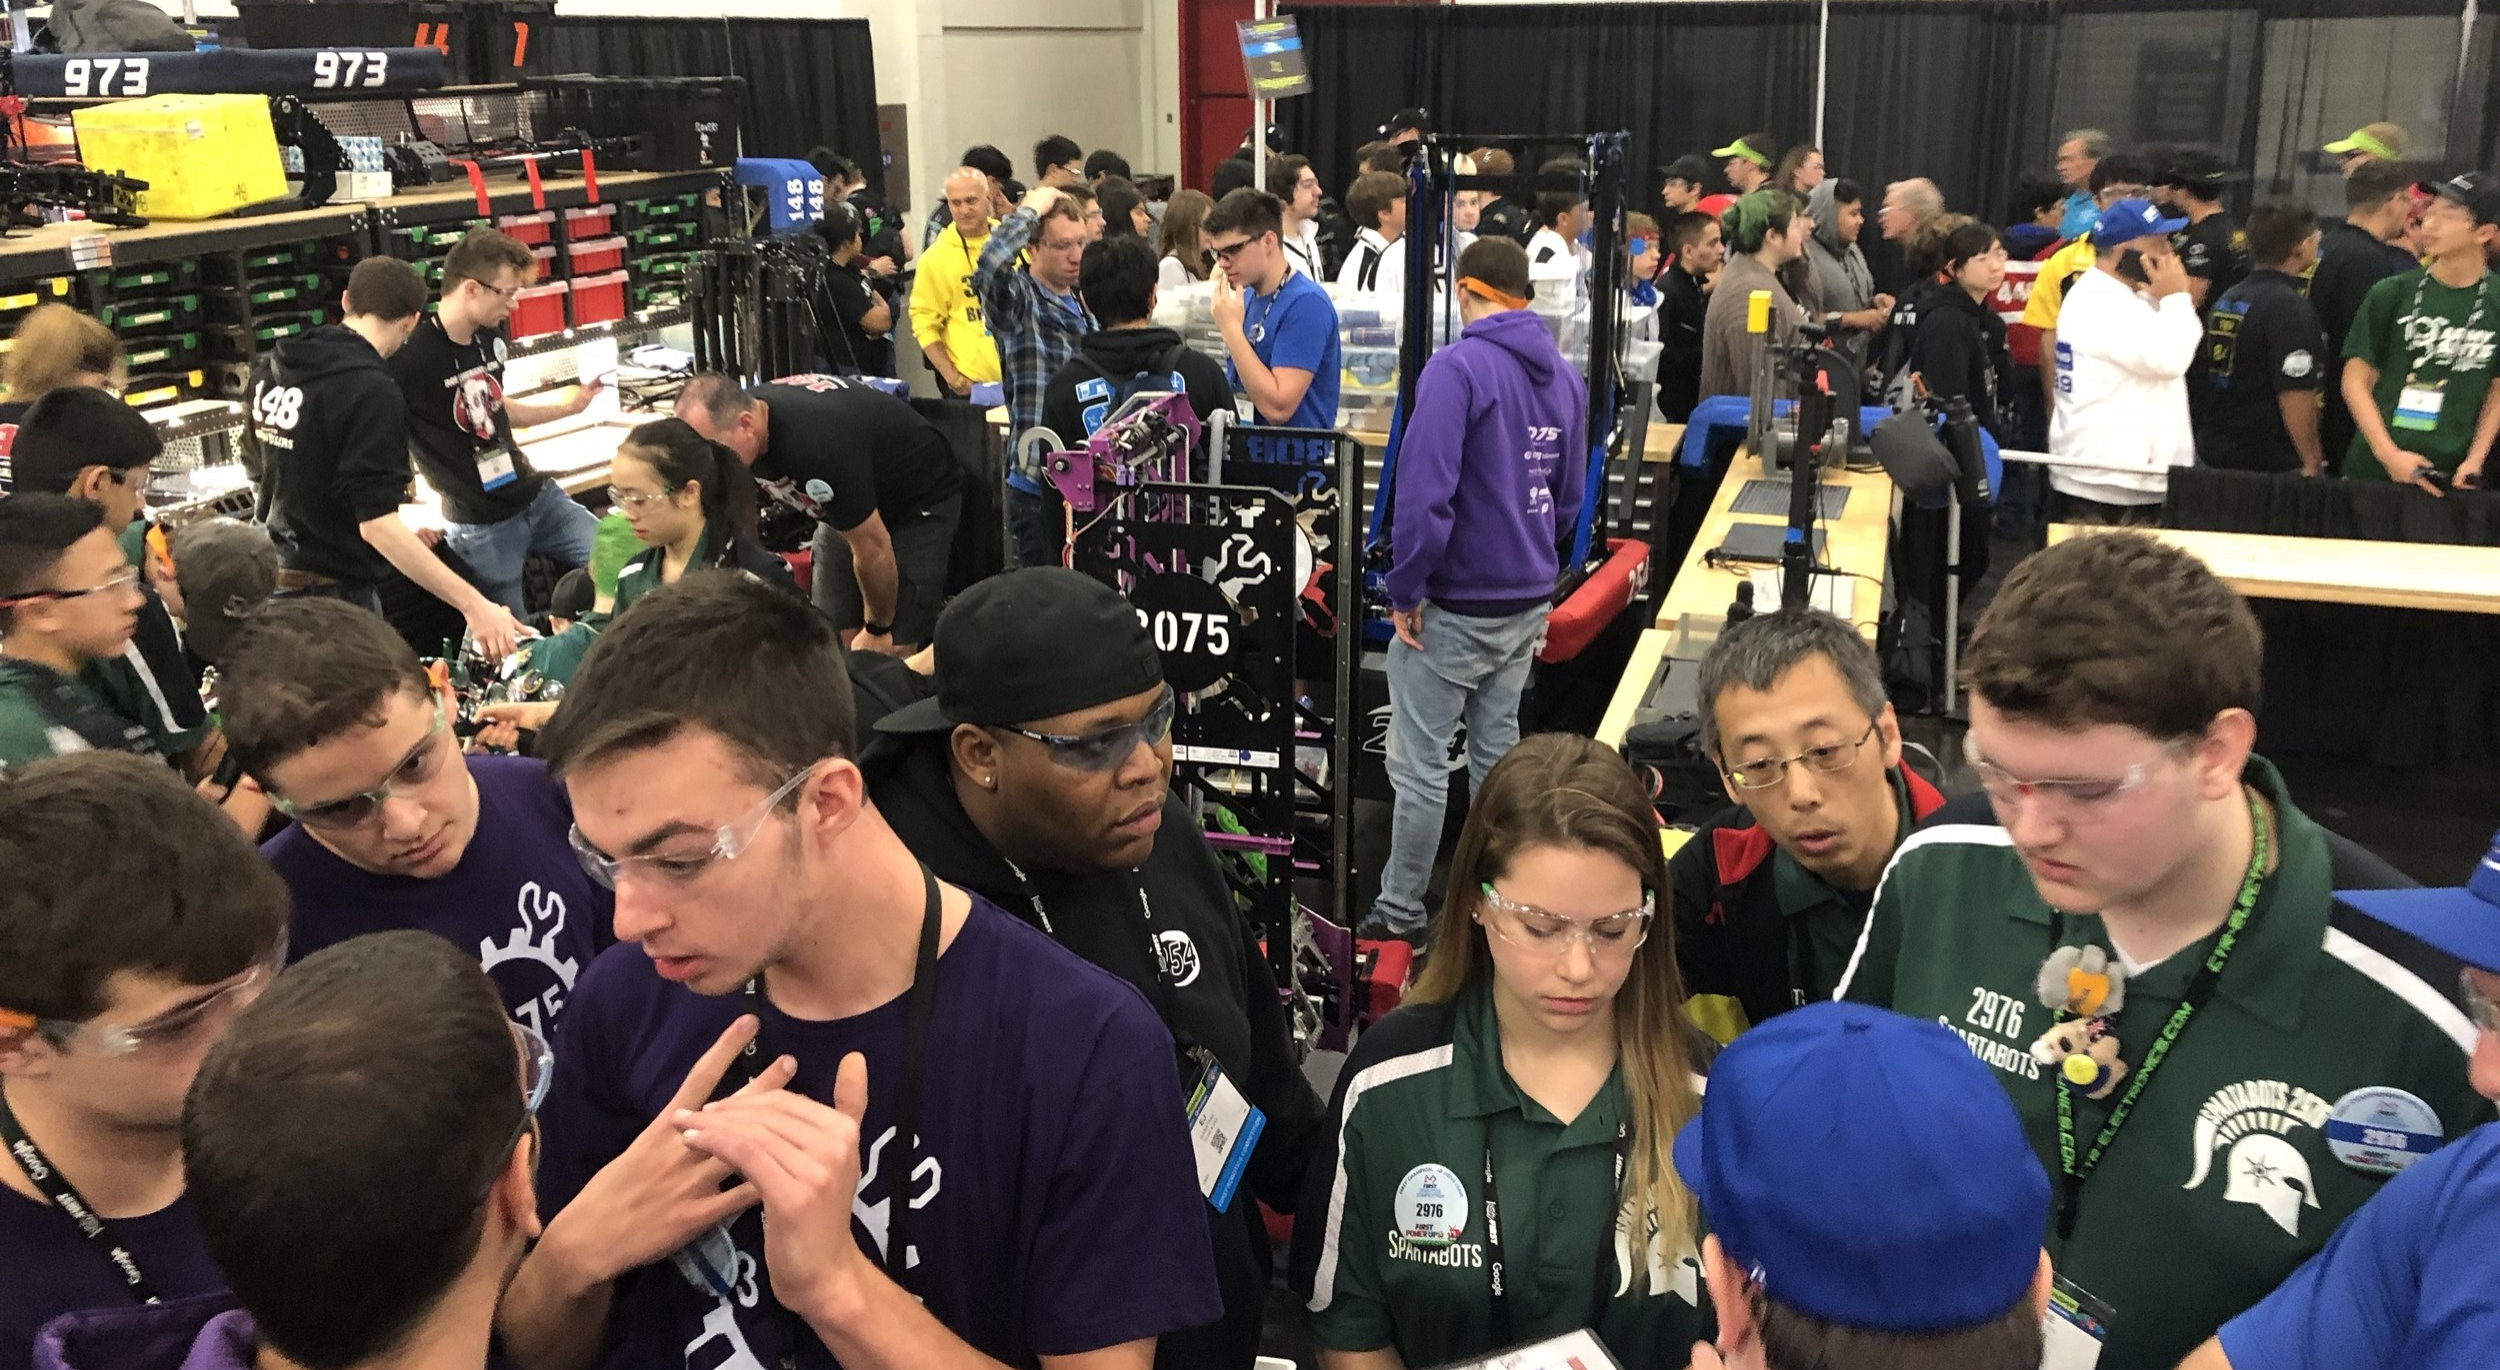 Our alliance's elimination pit was a busy place. Four teams, plus (what seemed like an  abnormal  amount of) visitors. It was GREAAAAAT - so much fun.